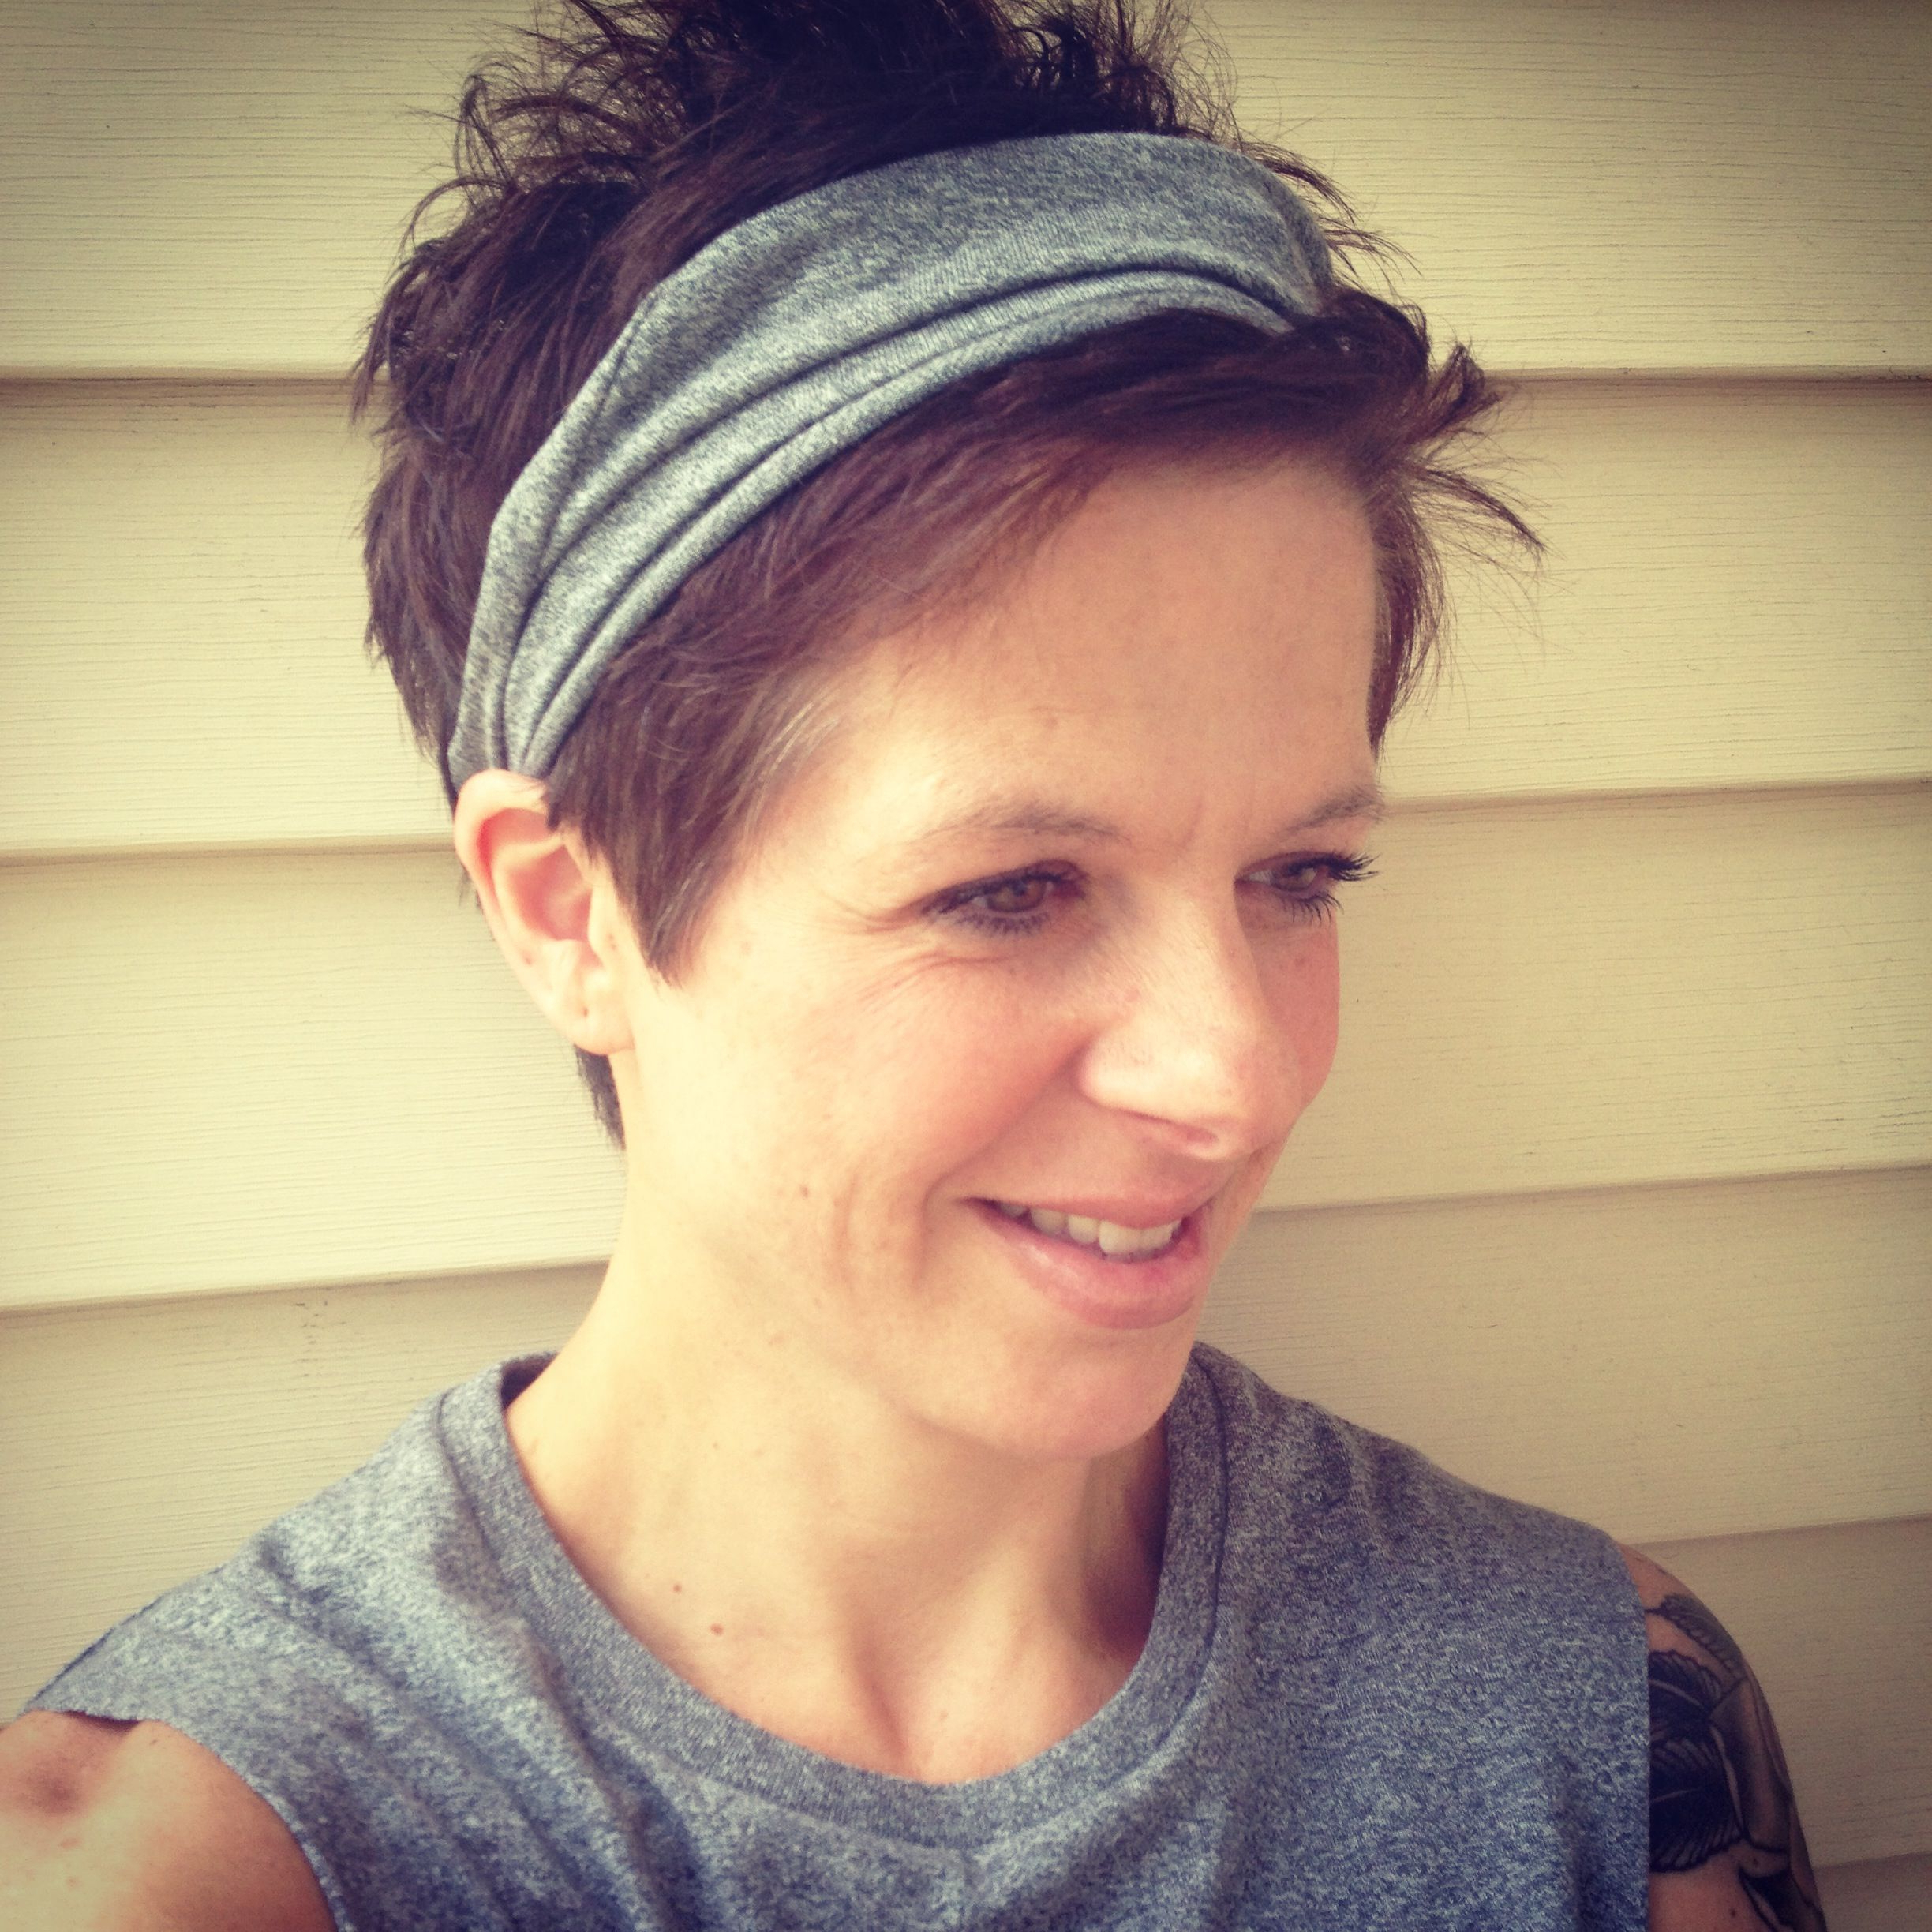 Pixie With Headband. Great Accessory For Short Hair (View 10 of 25)